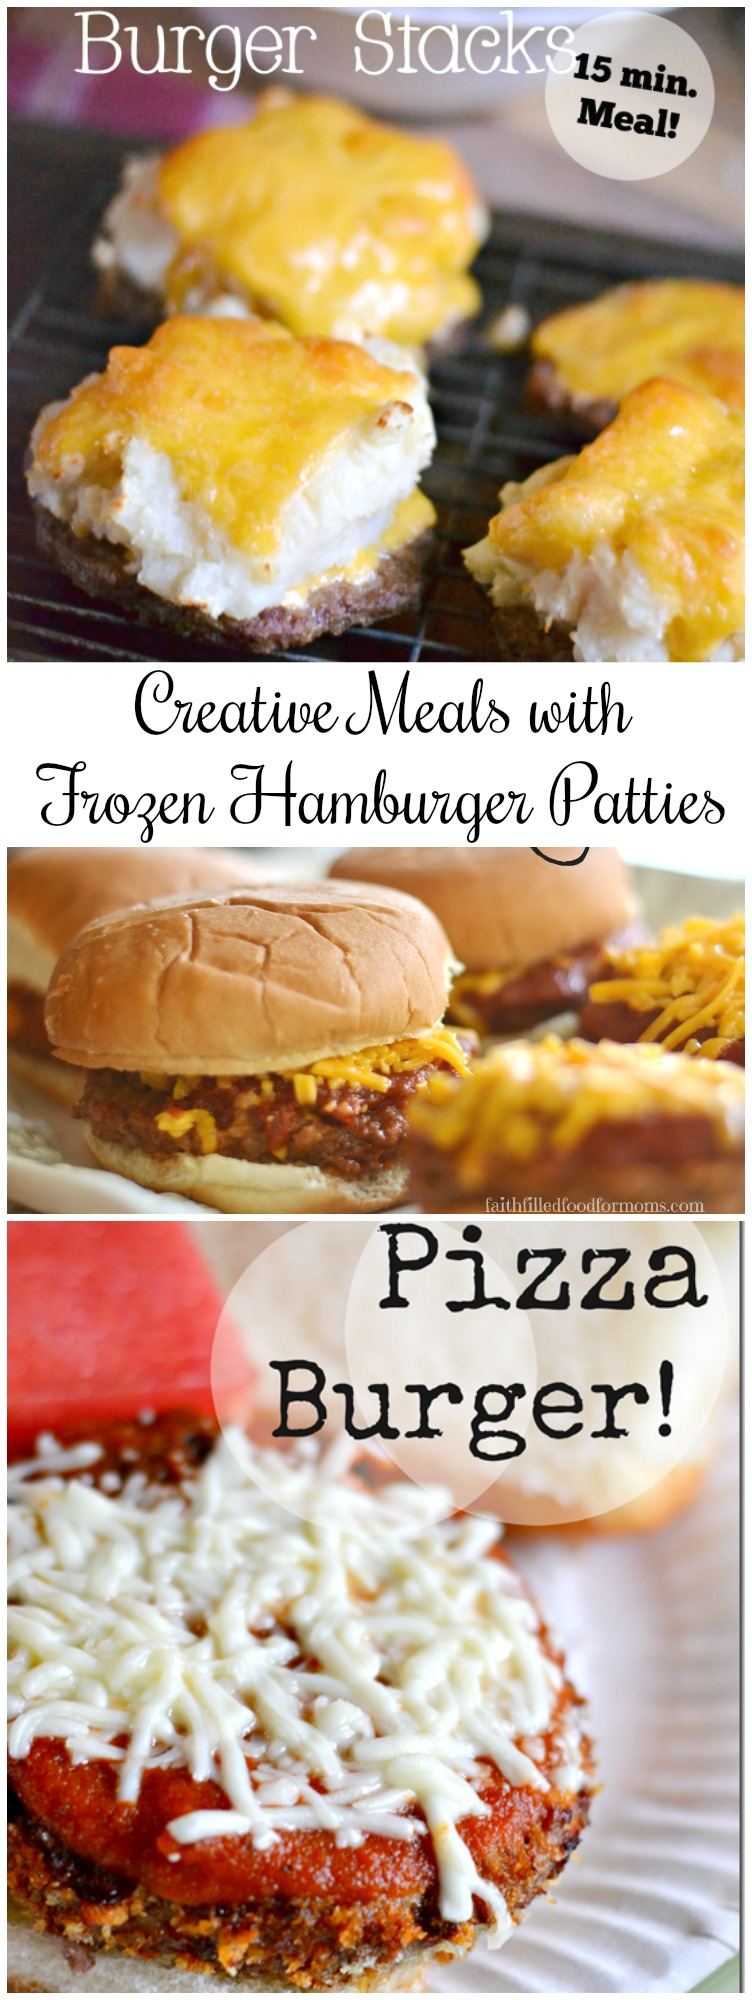 Meals Using Frozen Hamburger Patties • Faith Filled Food for Moms